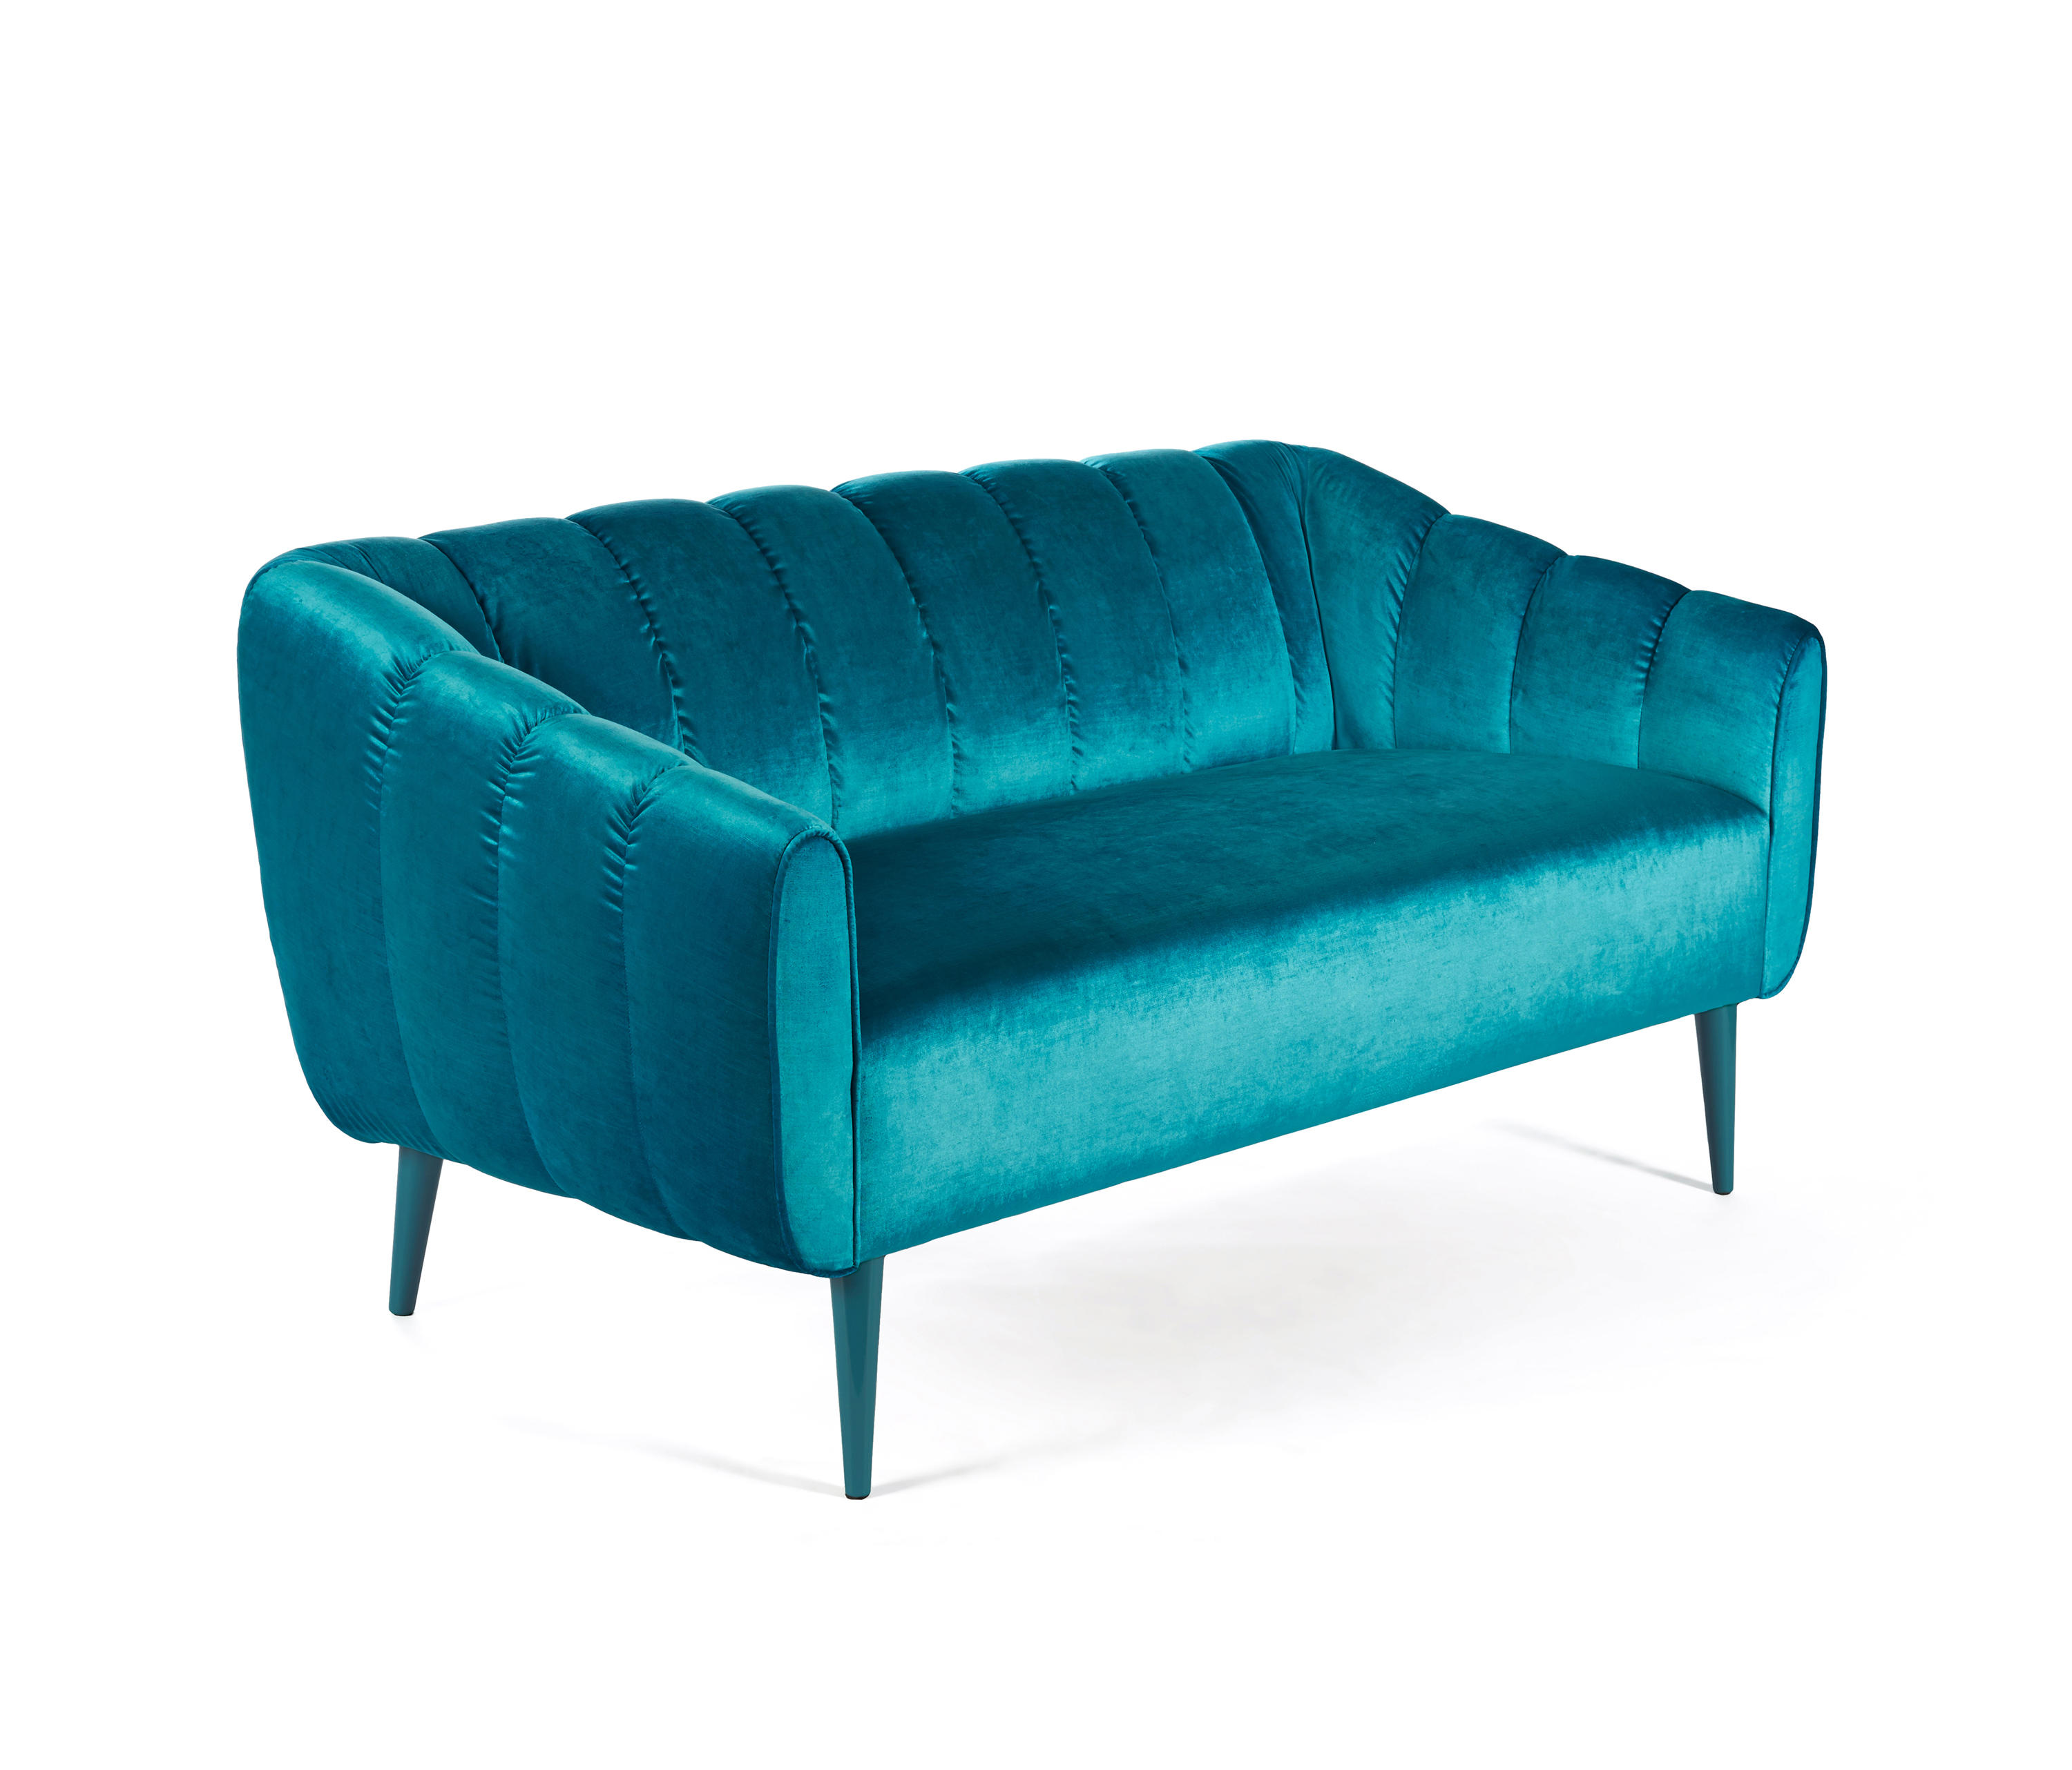 Houston | Sofa By MUNNA | Lounge Sofas ...